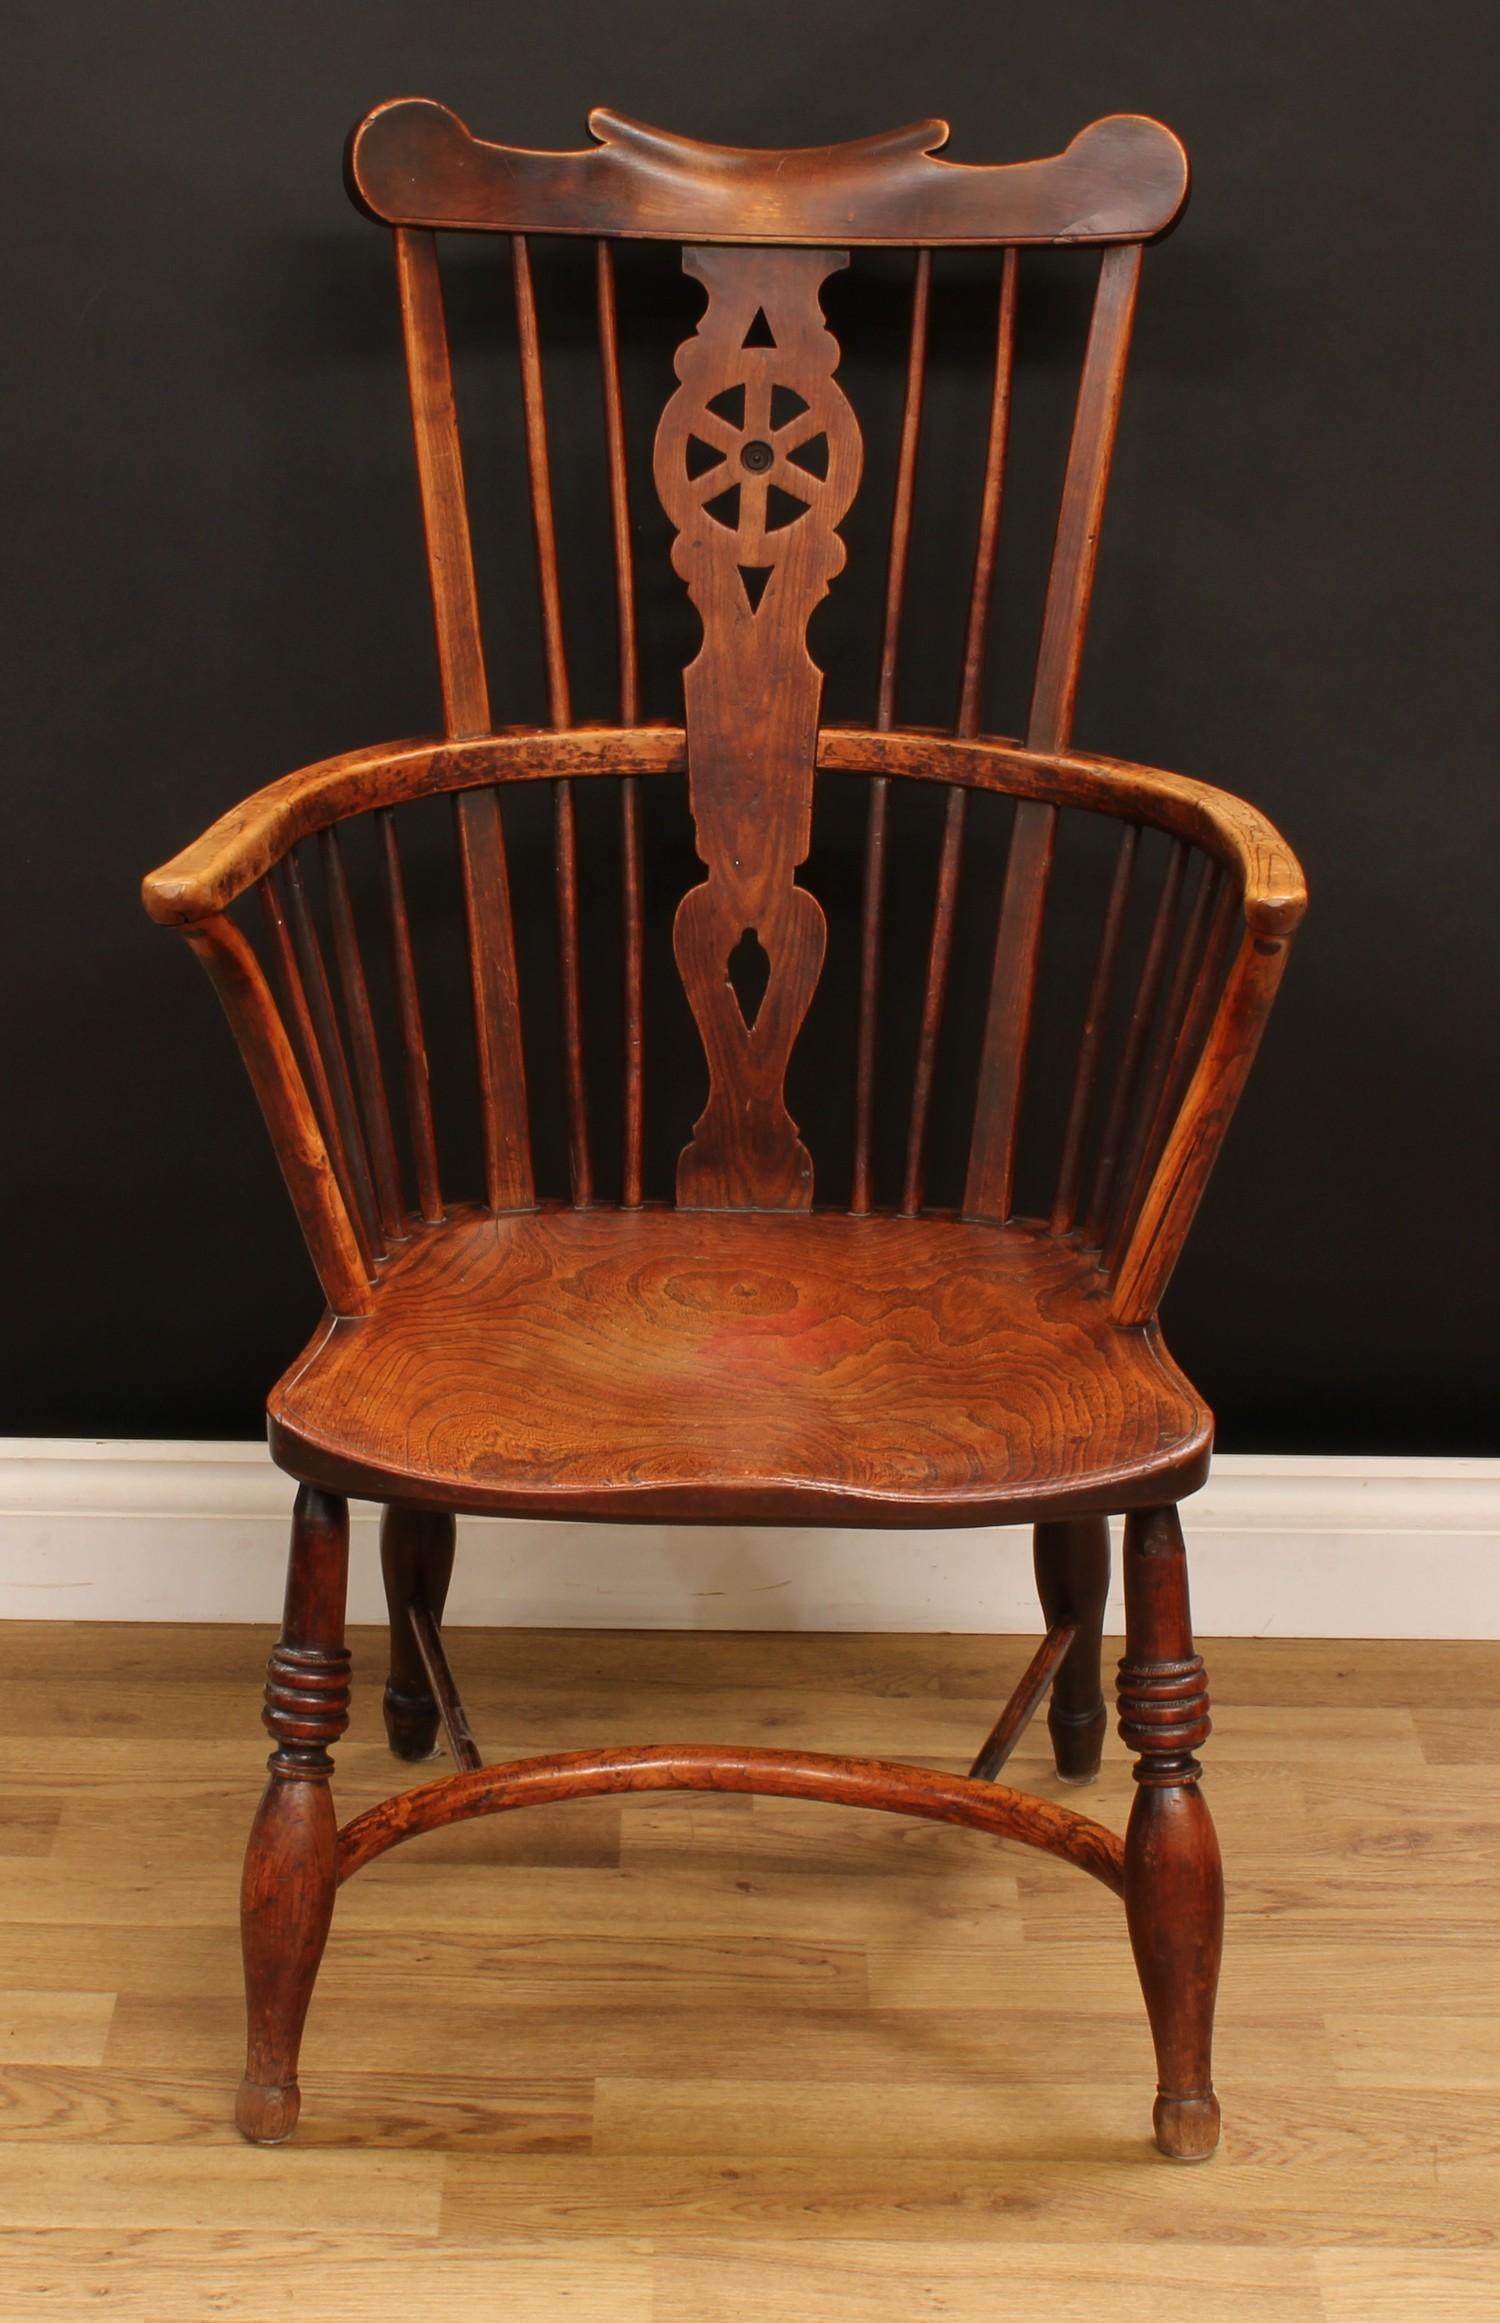 A country house ash and elm Windsor elbow chair, shaped cresting rail above a wheel back splat, - Image 2 of 4